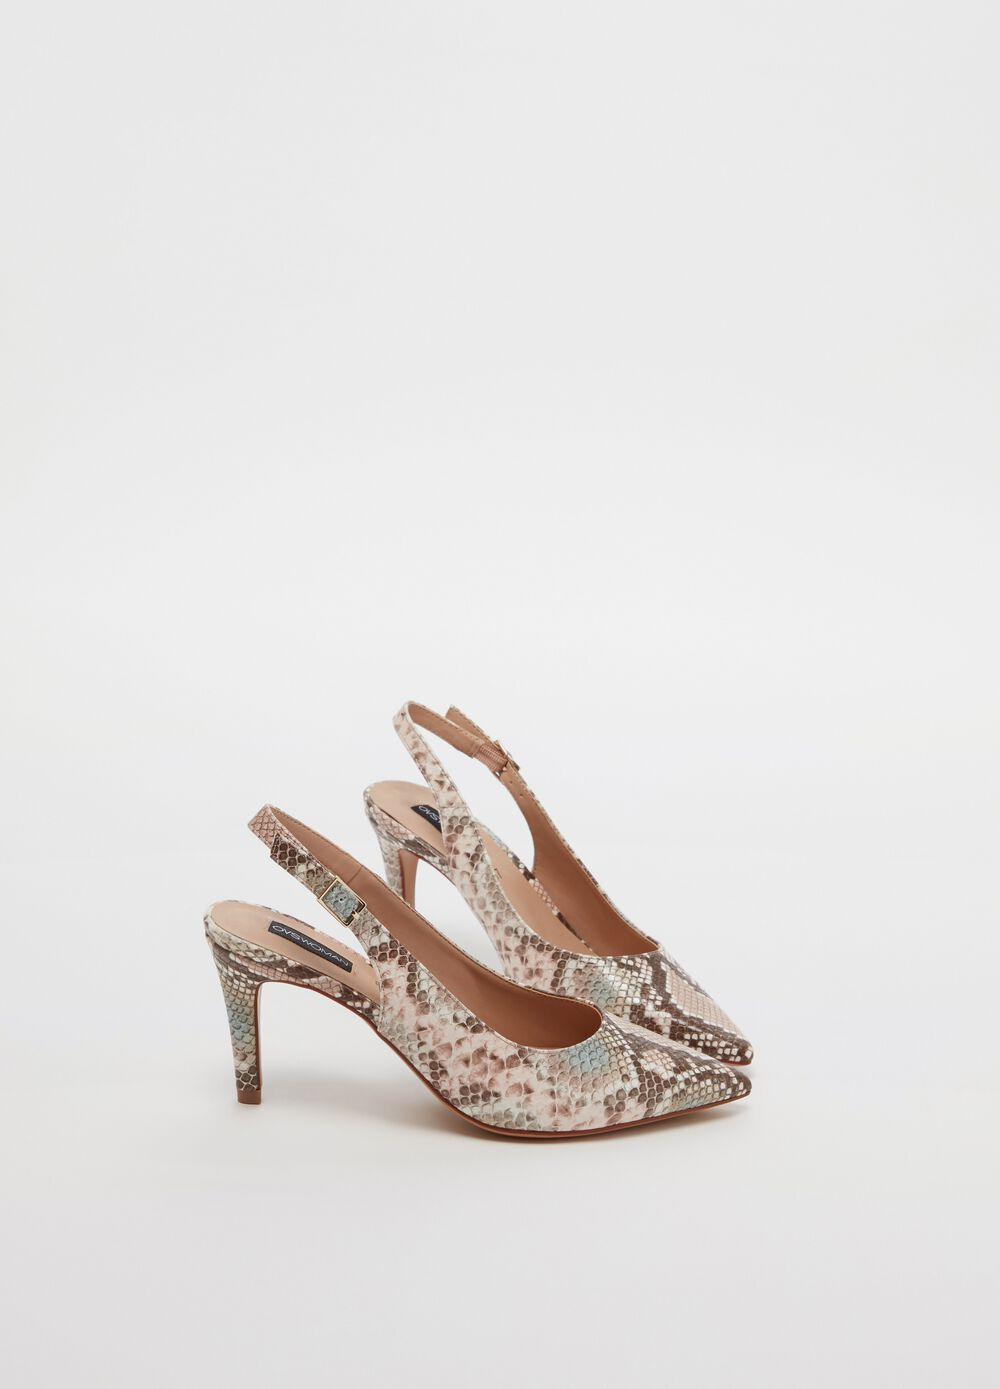 Court shoe with snakeskin pattern